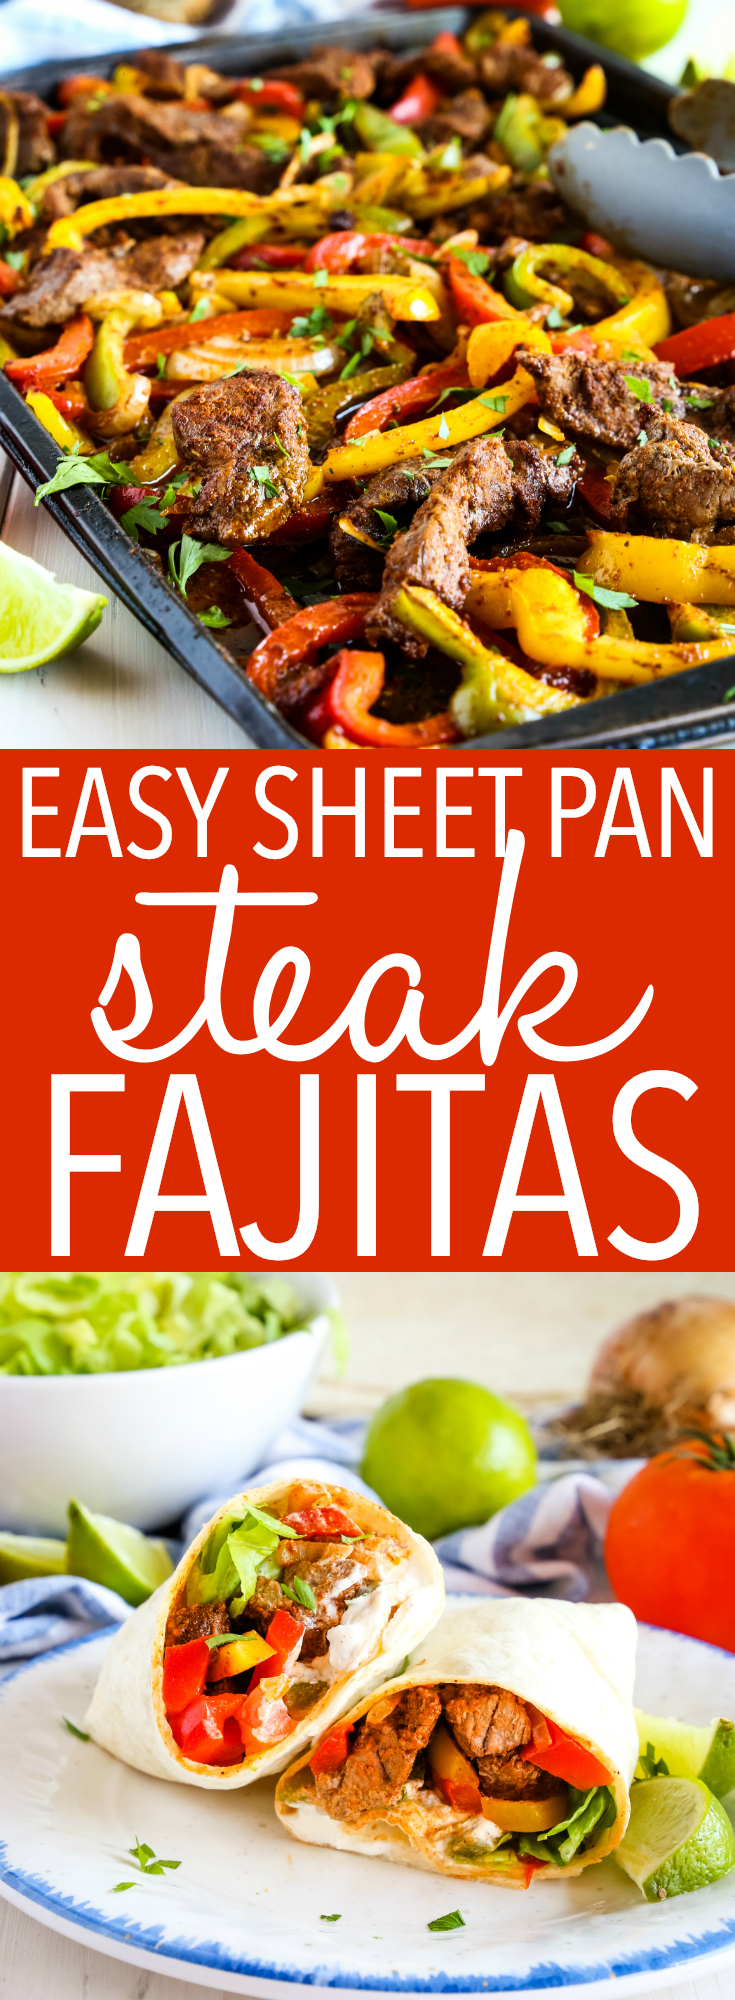 These Easy Sheet Pan Steak Fajitas make the perfect simple and healthy weeknight meal for busy families! Made with lean beef, fresh veggies and your favourite Mexican-style fixings! Recipe from thebusybaker.ca! #fajitas #mexican #steak #beef #healthy #familymeal #mealprep #easymeal #recipe #easy #texmex #foodblog via @busybakerblog